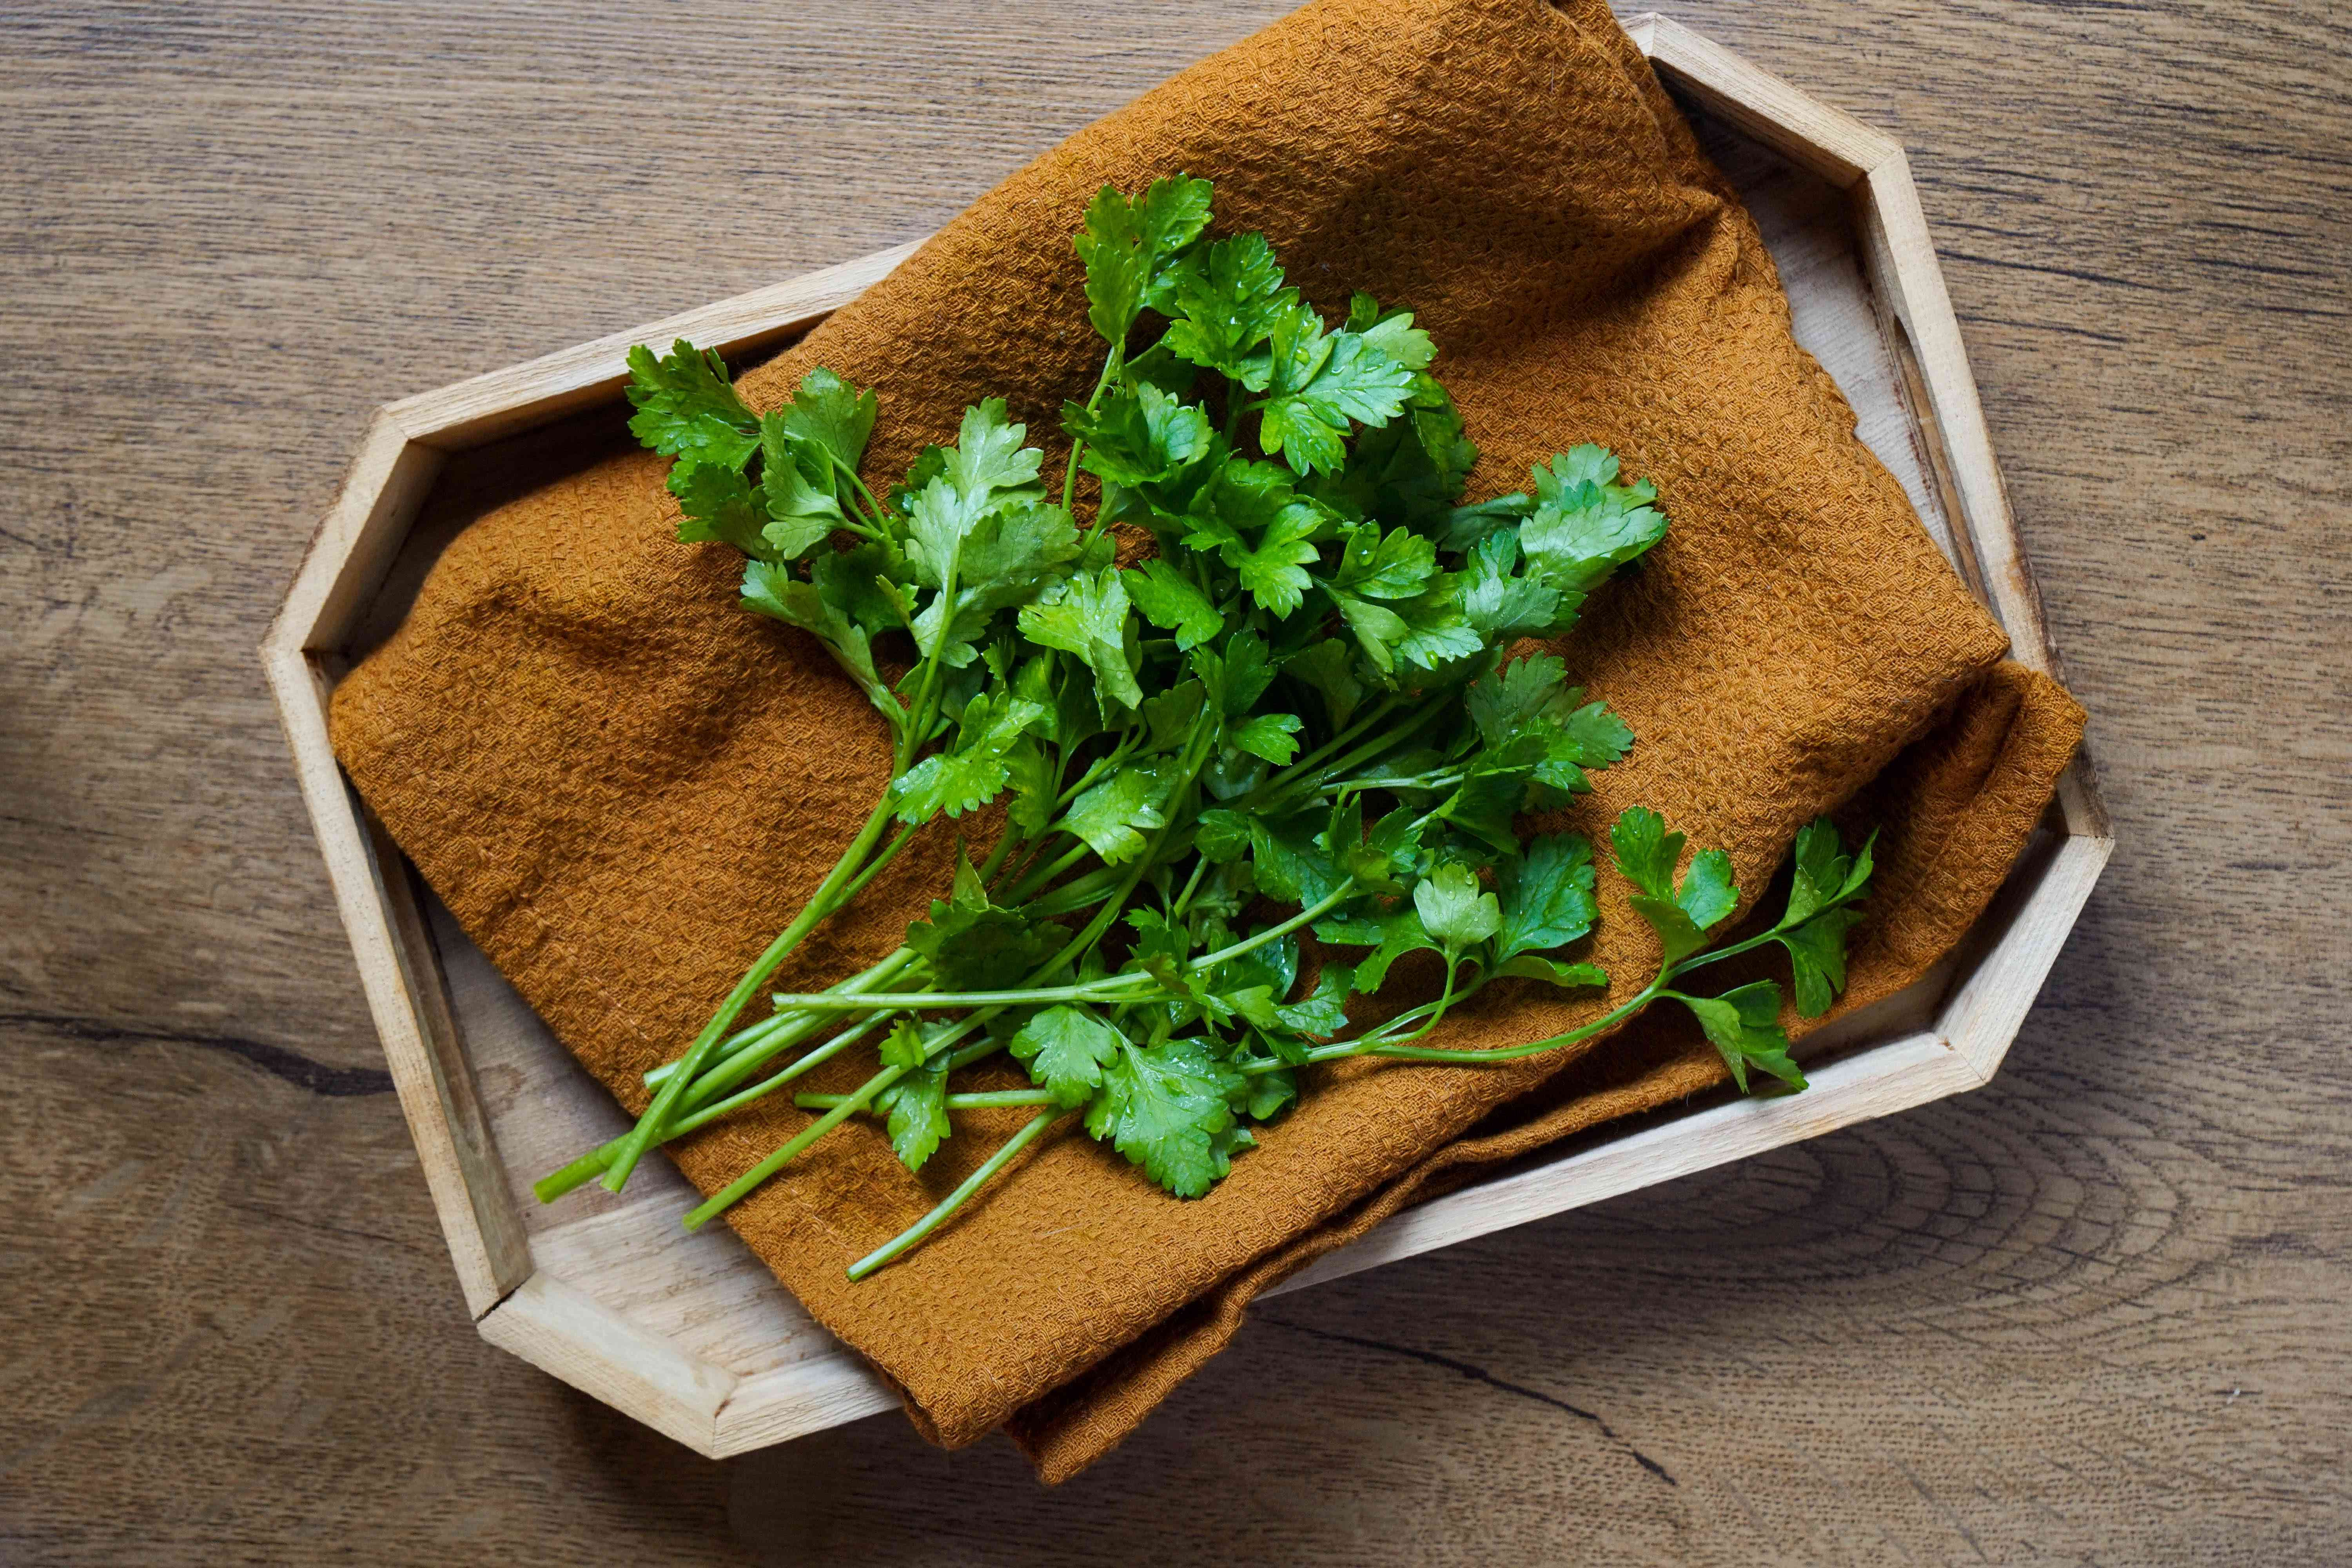 washed and dried parsley rests on brown napkin ready for water storage